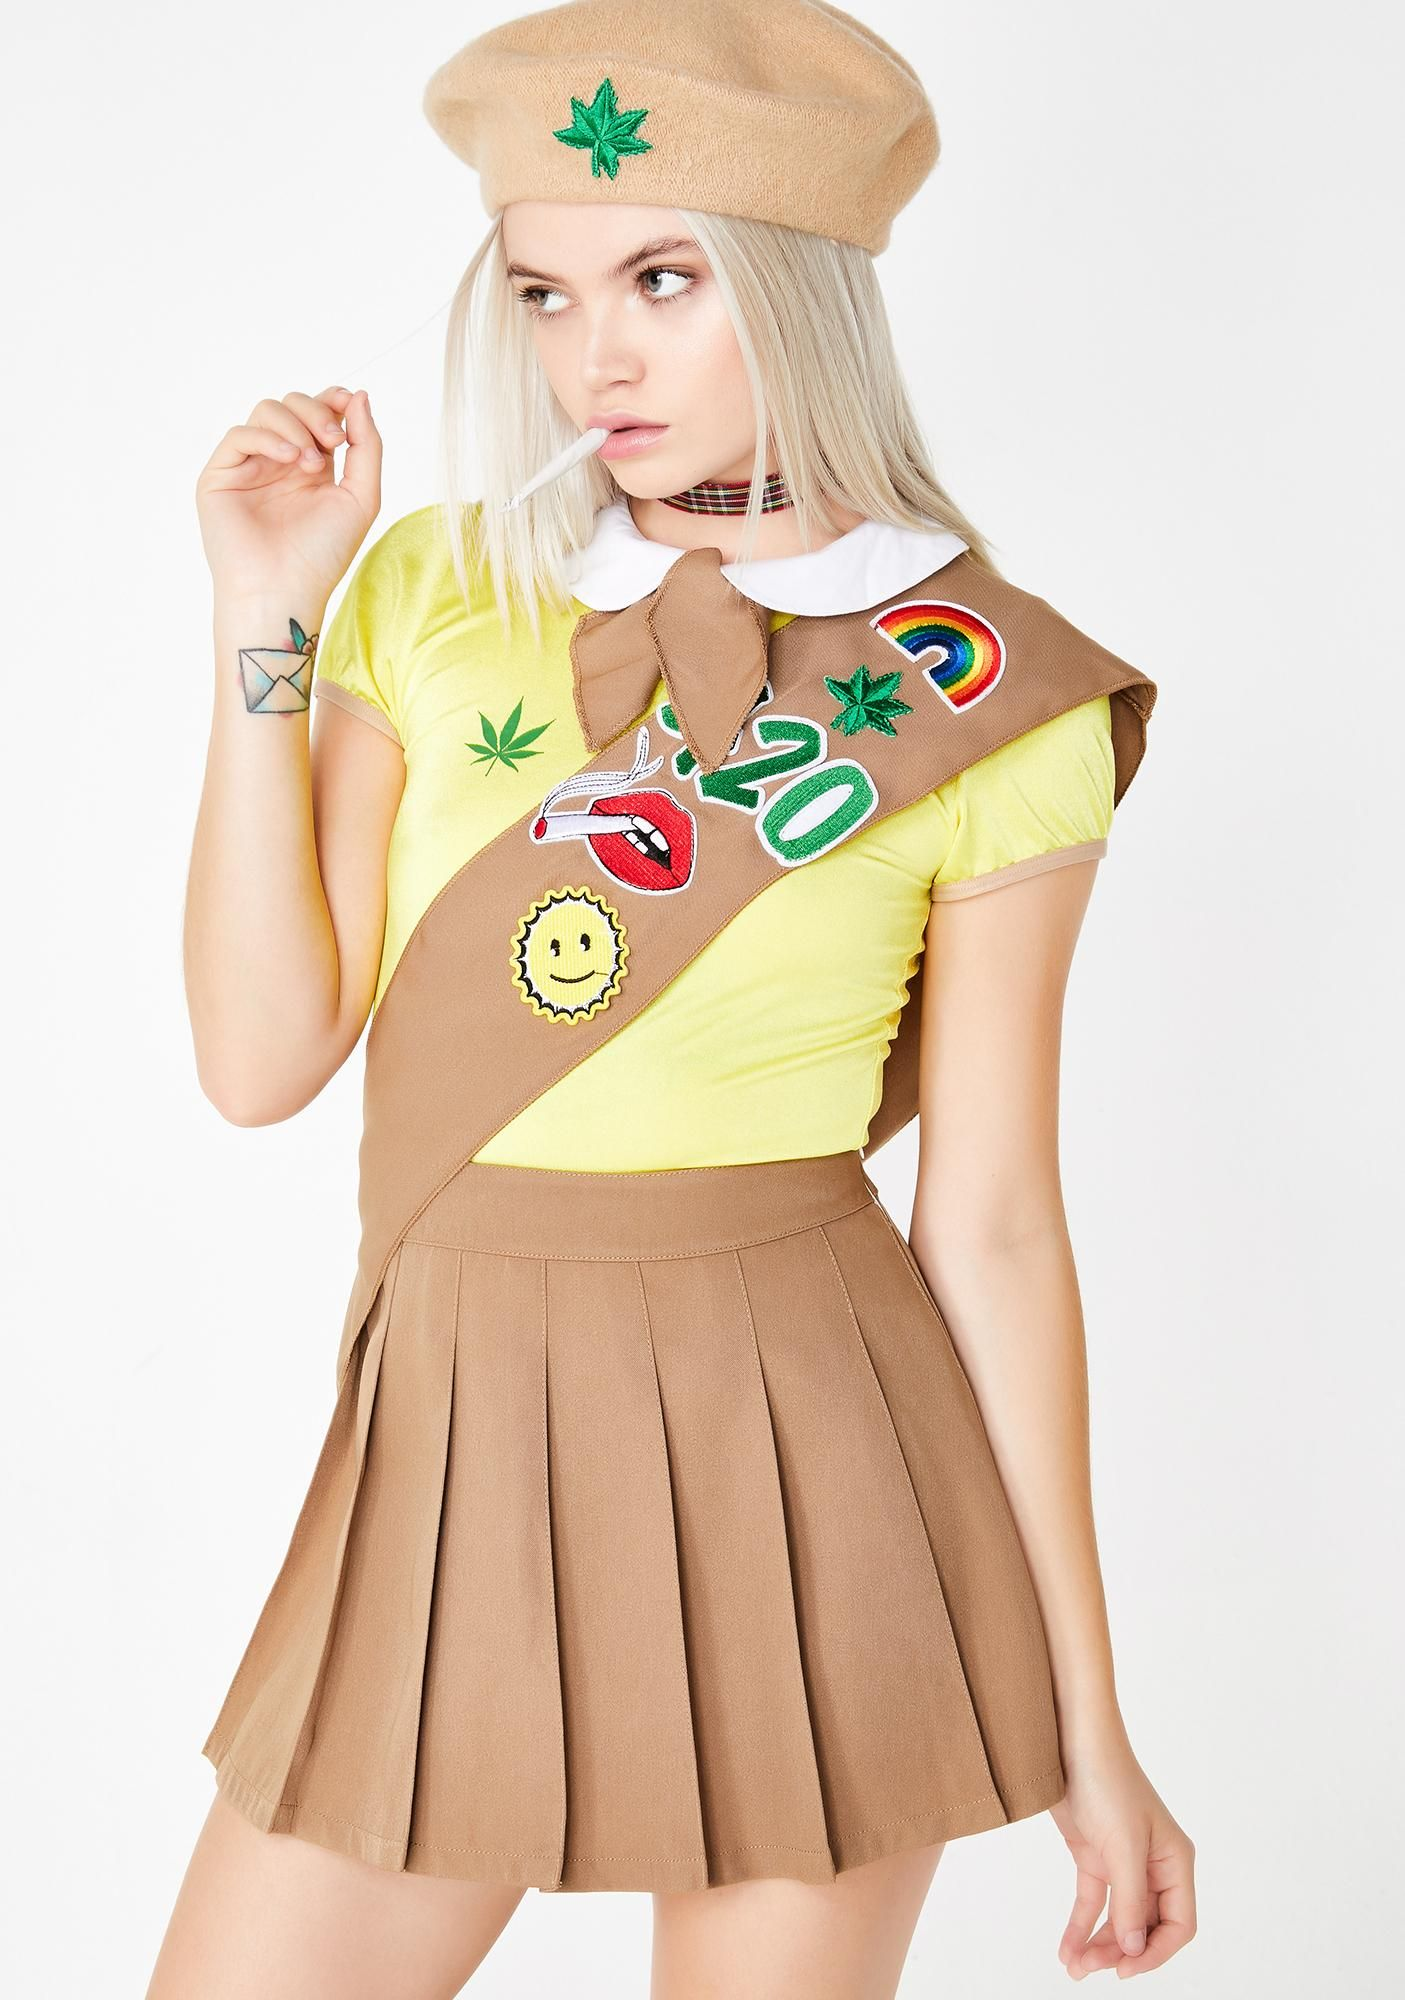 Sexy girl scout halloween costume